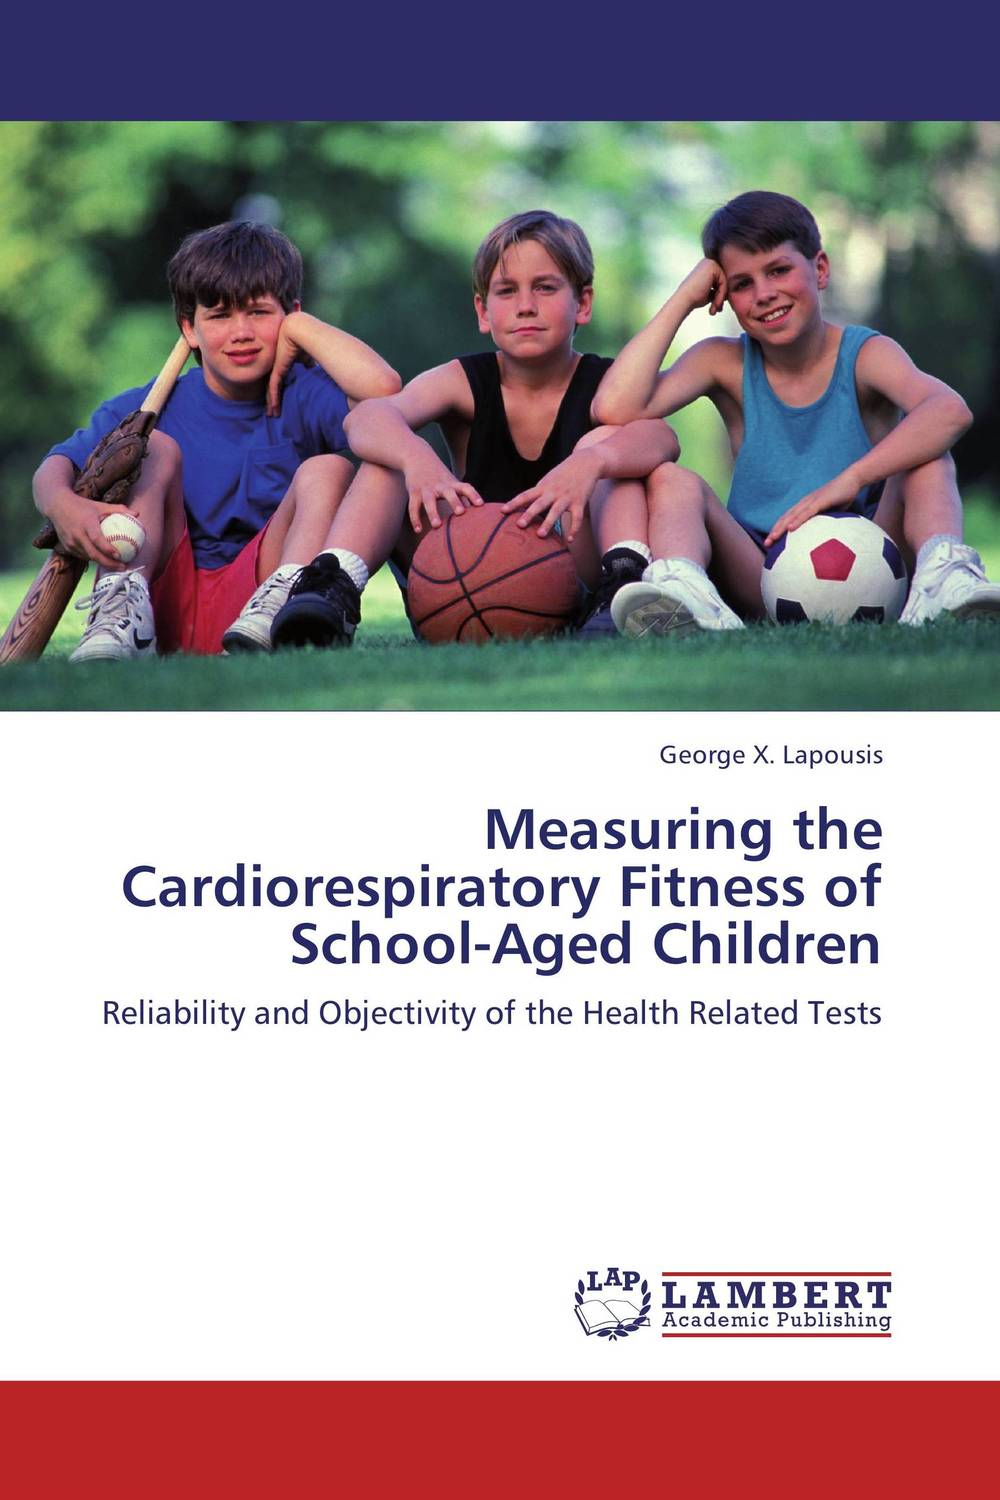 Measuring the Cardiorespiratory Fitness of School-Aged Children